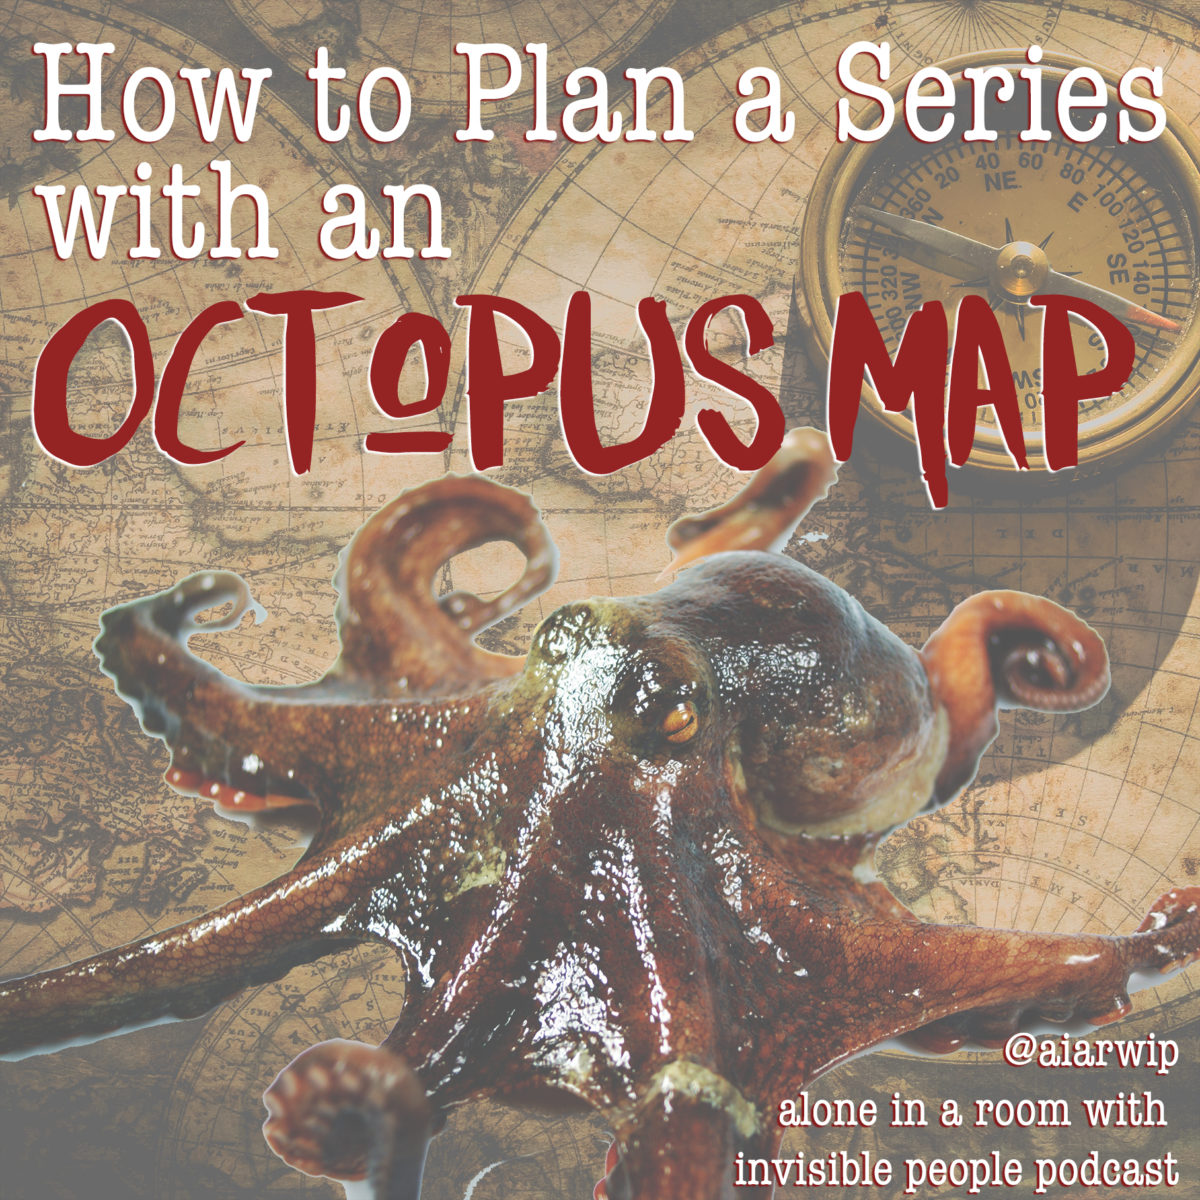 How to Plan a Series with an Octopus Map